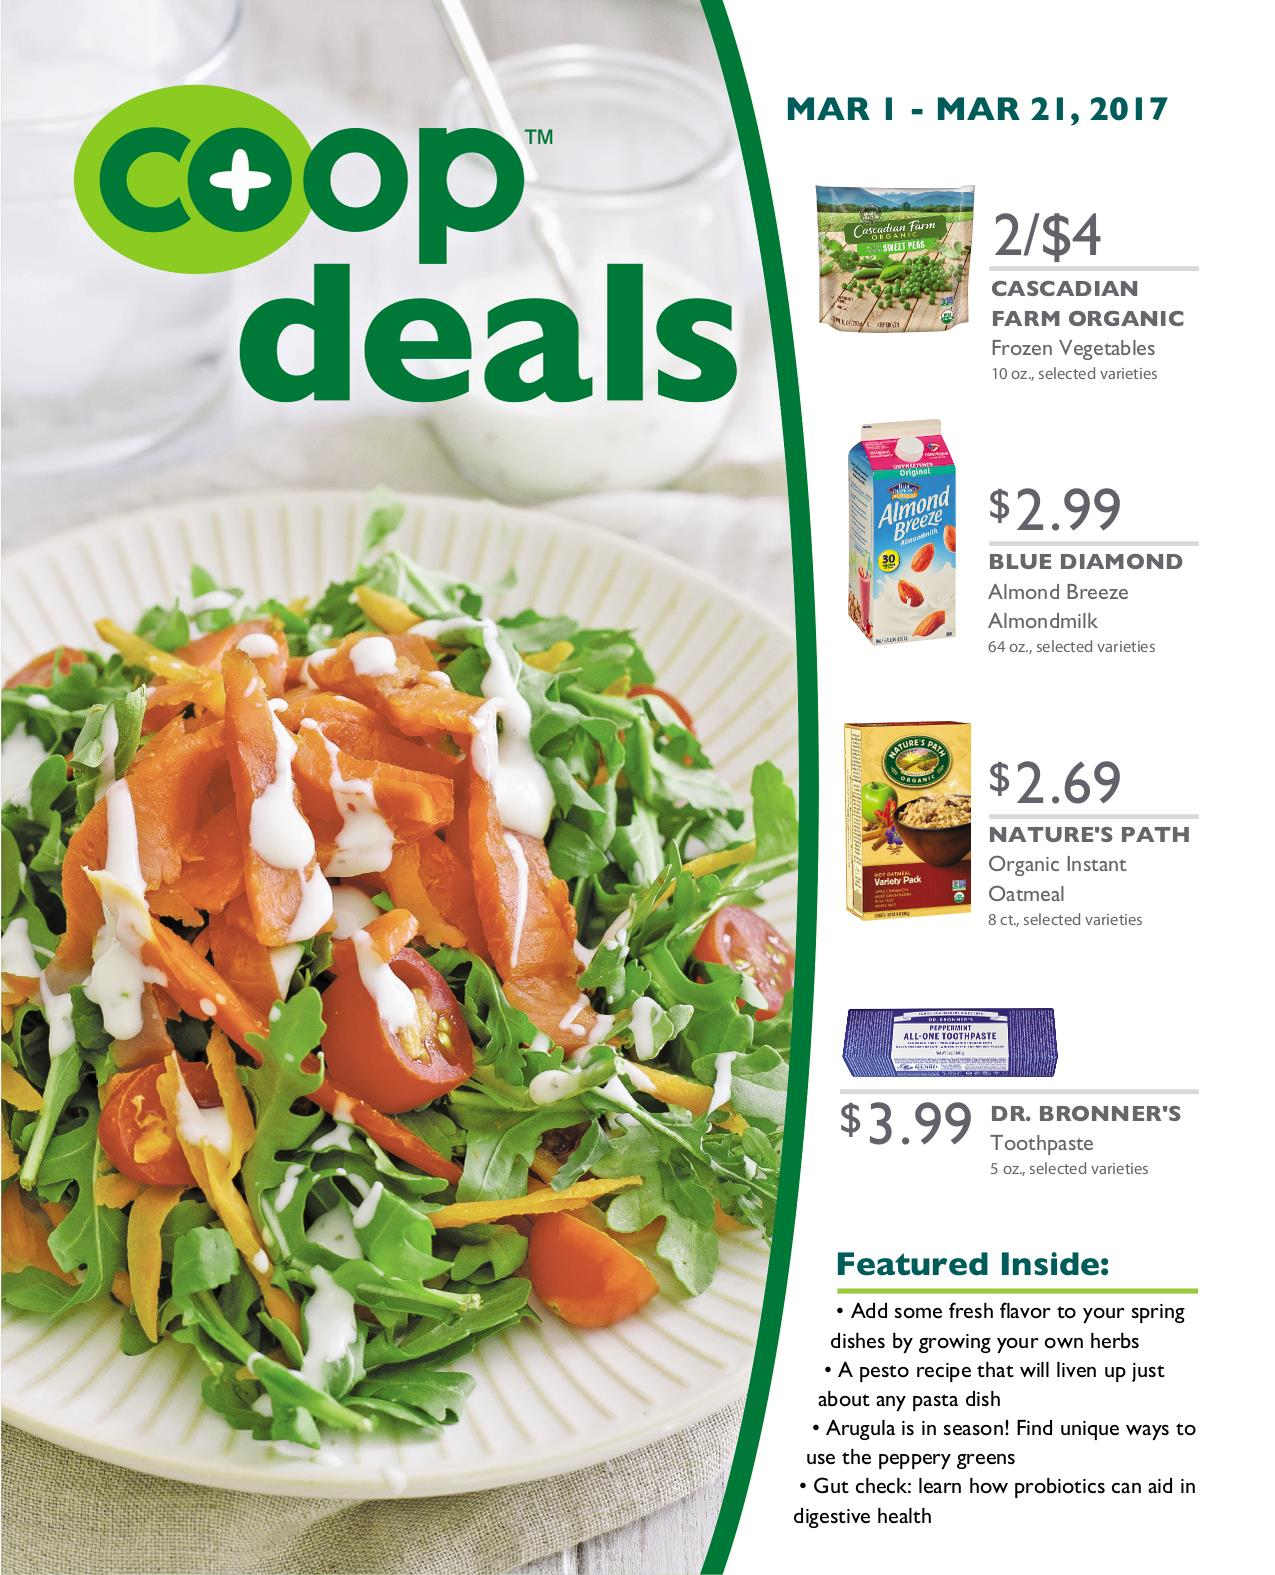 Co+op Deals March 2017 - Flyer A